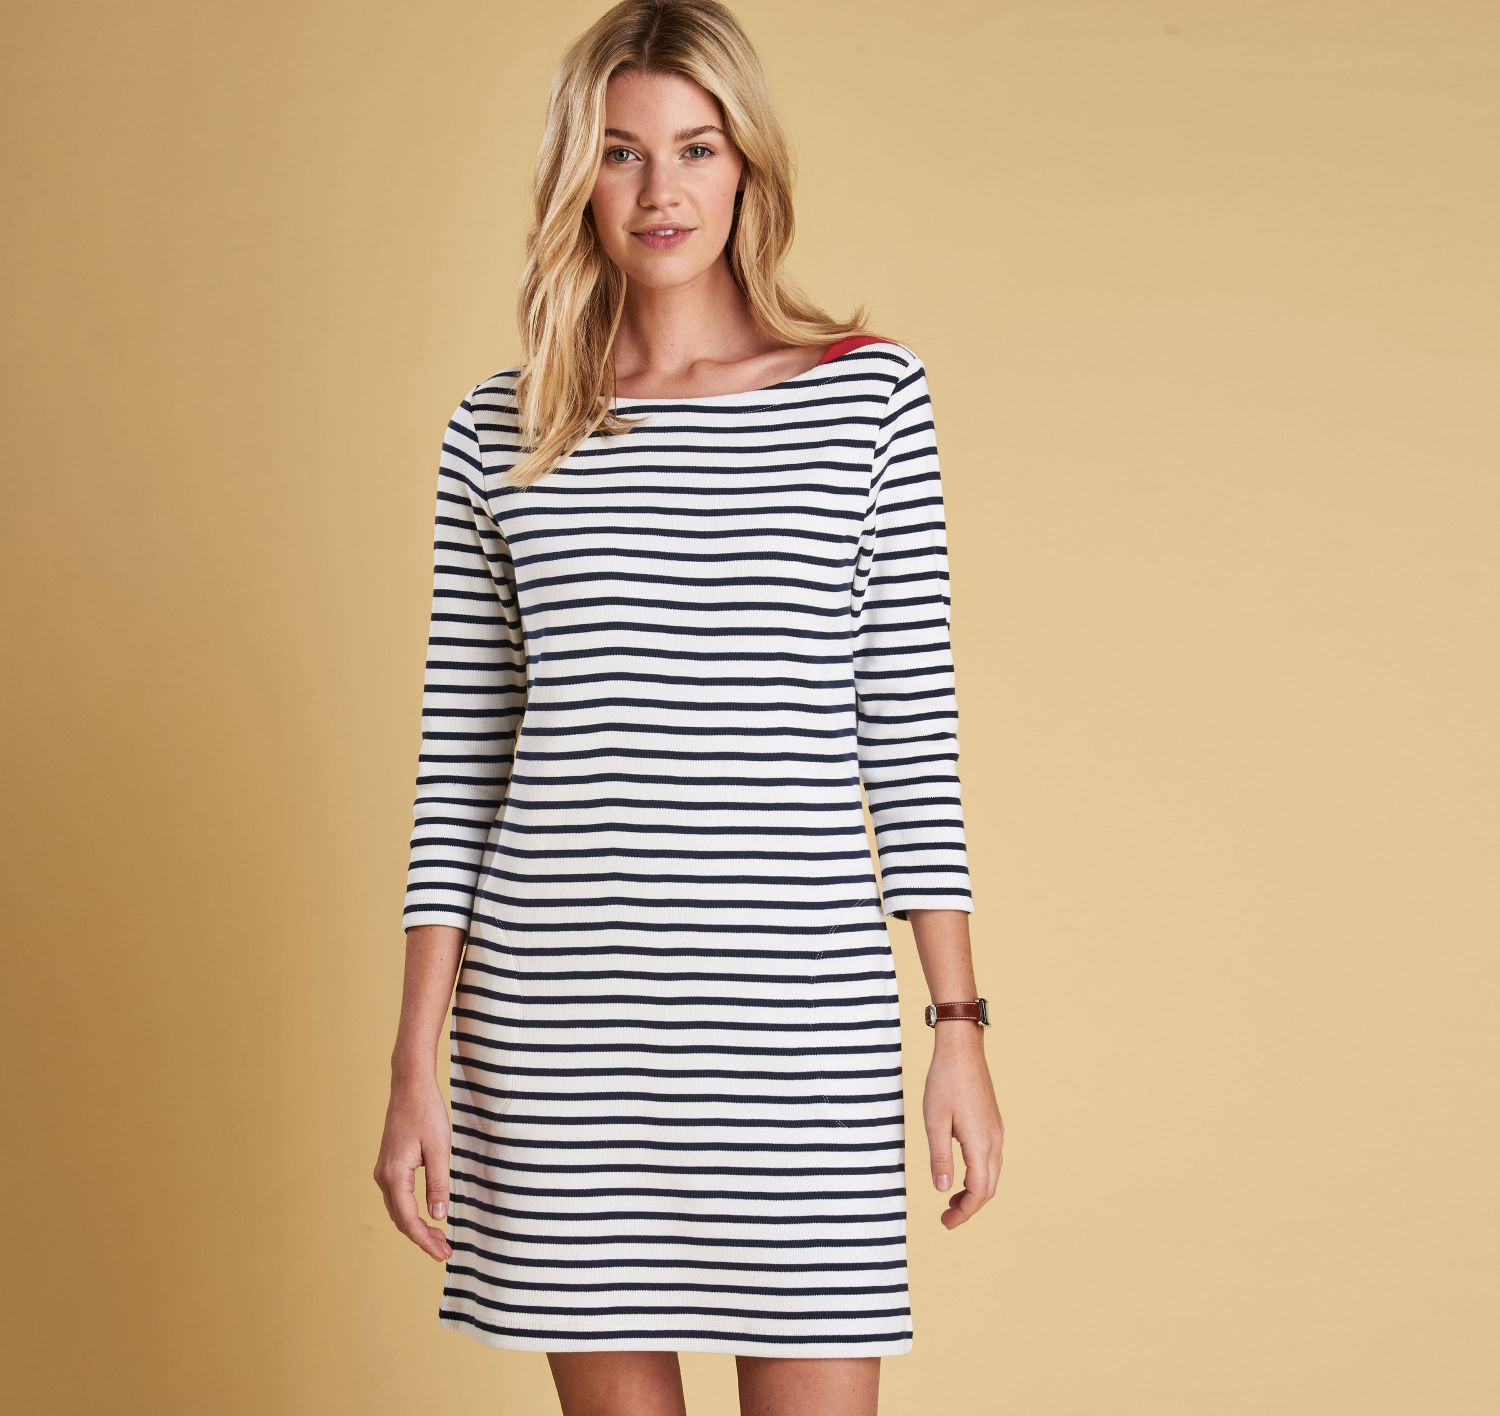 barbour-southwold-dress-caitlin elizabeth james-stripes.jpg